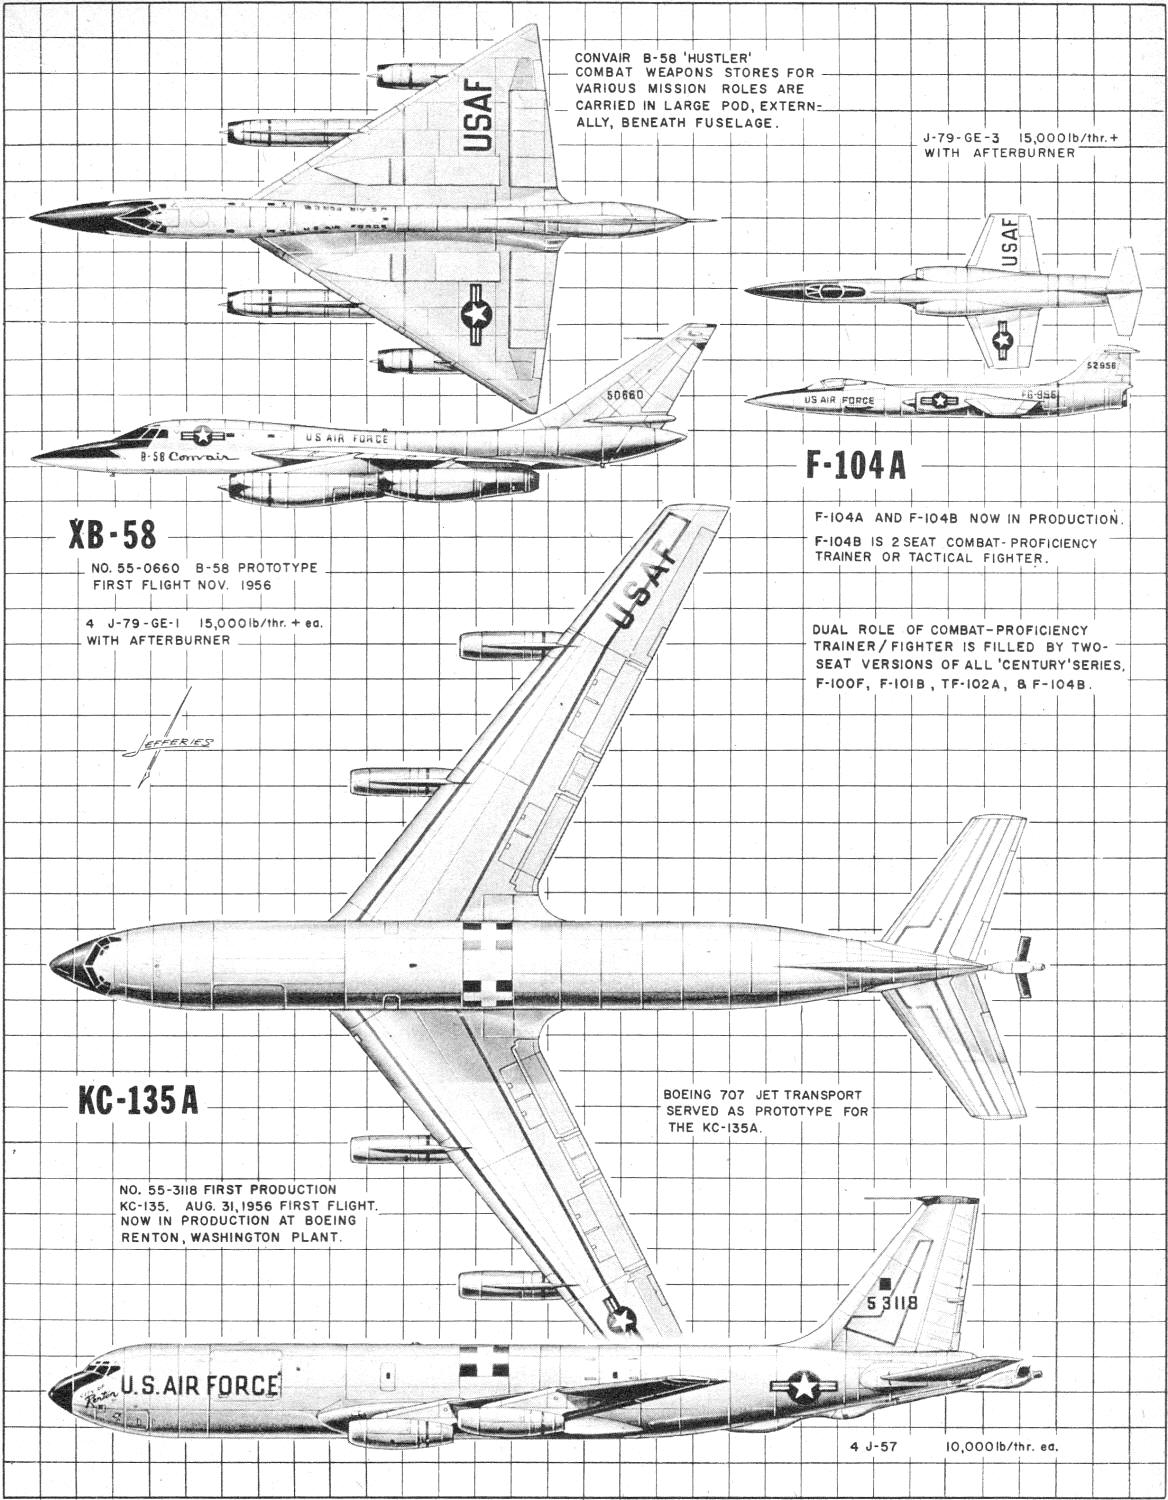 Newcomers to America's Jet Air Force, October 1957 American Modeler